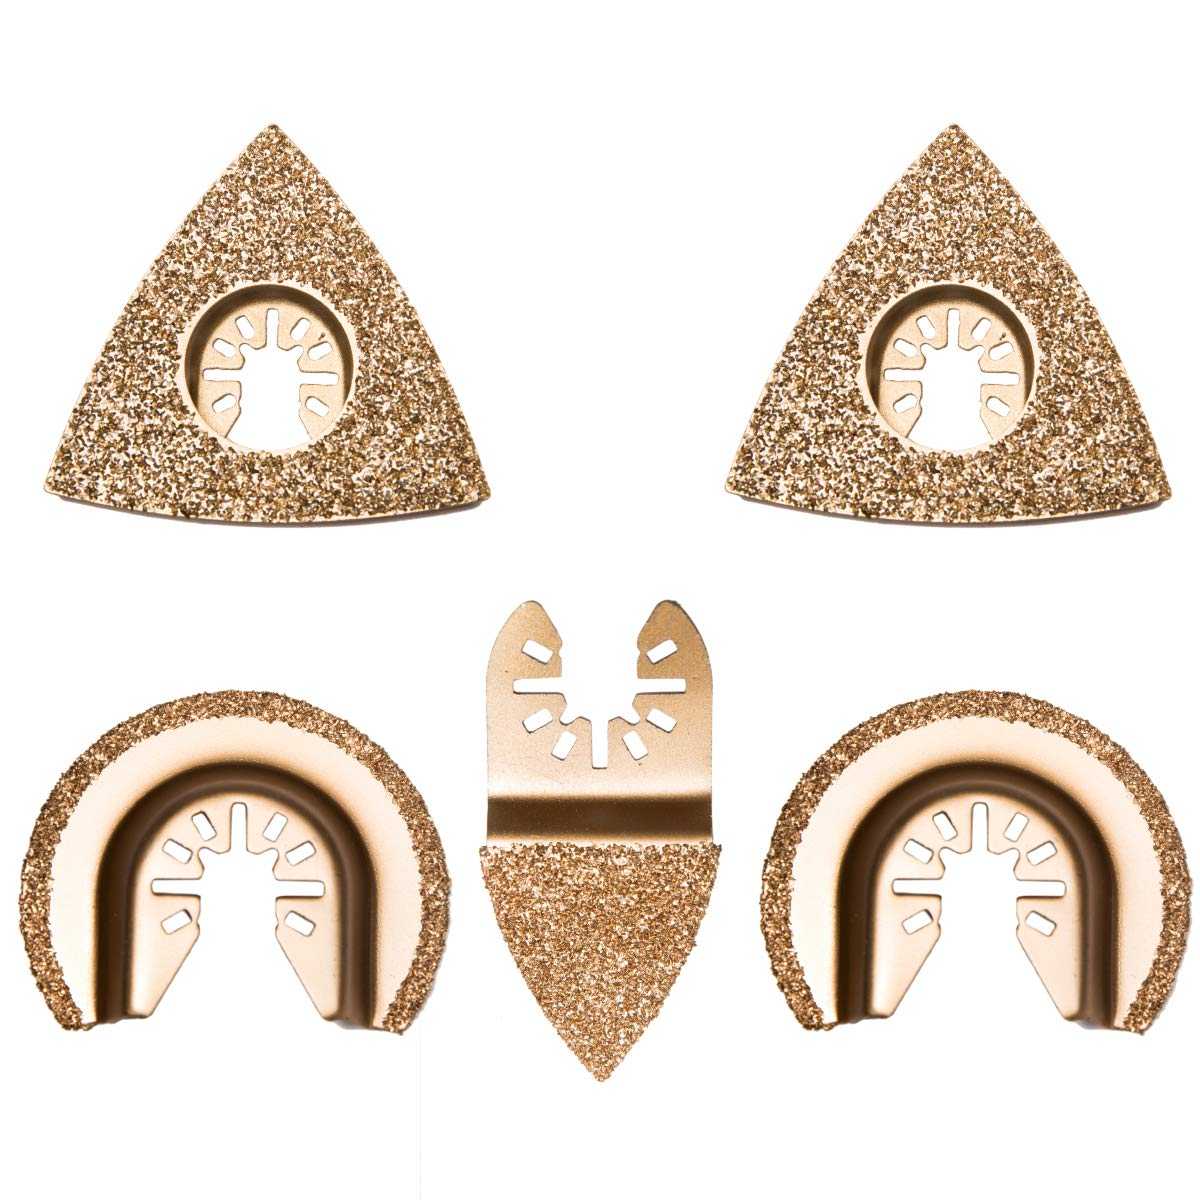 Universal Carbide Oscillating Saw Blades Semicircle Triangular Finger Carbide Oscillating Multi Tool Blades for Tile Grout Removal